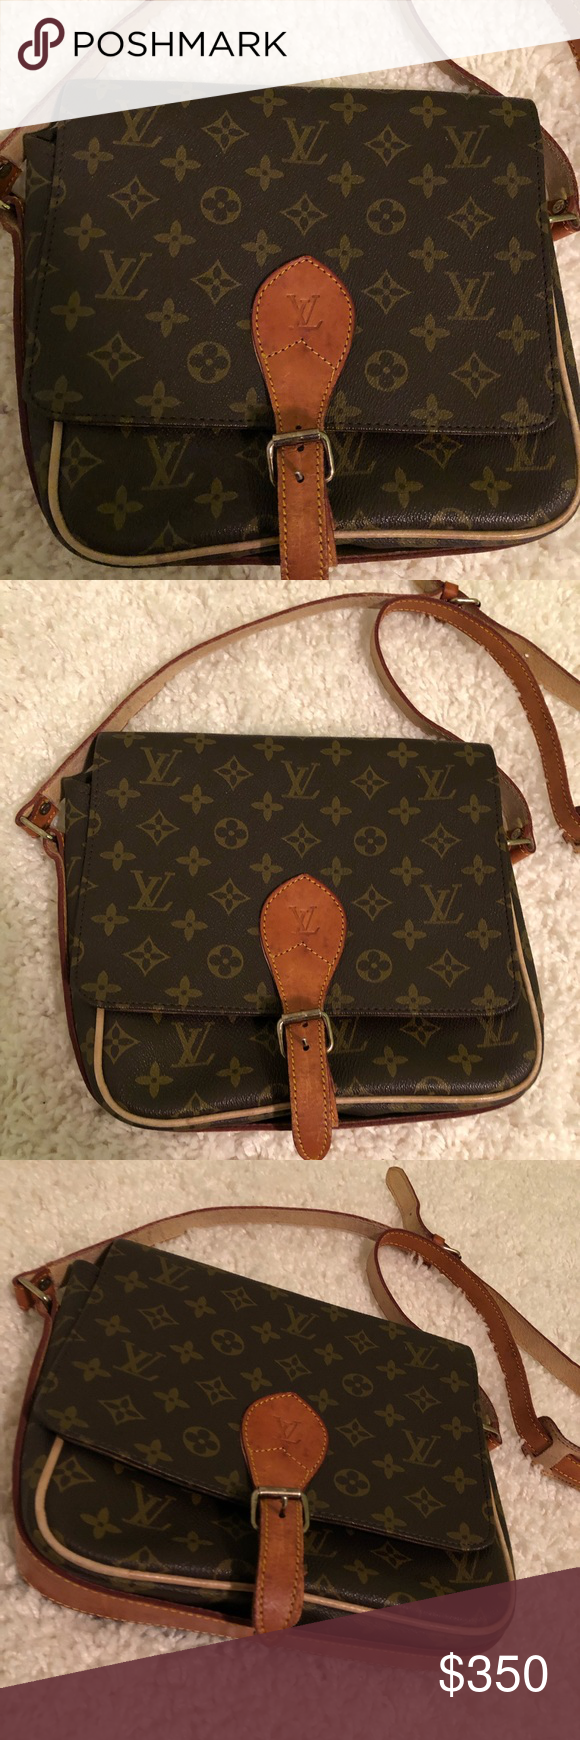 851d8ba33e44 Spotted while shopping on Poshmark  LOUIS VUITTON MUSETTE TANGO Shoulder  Bag Purse!  poshmark